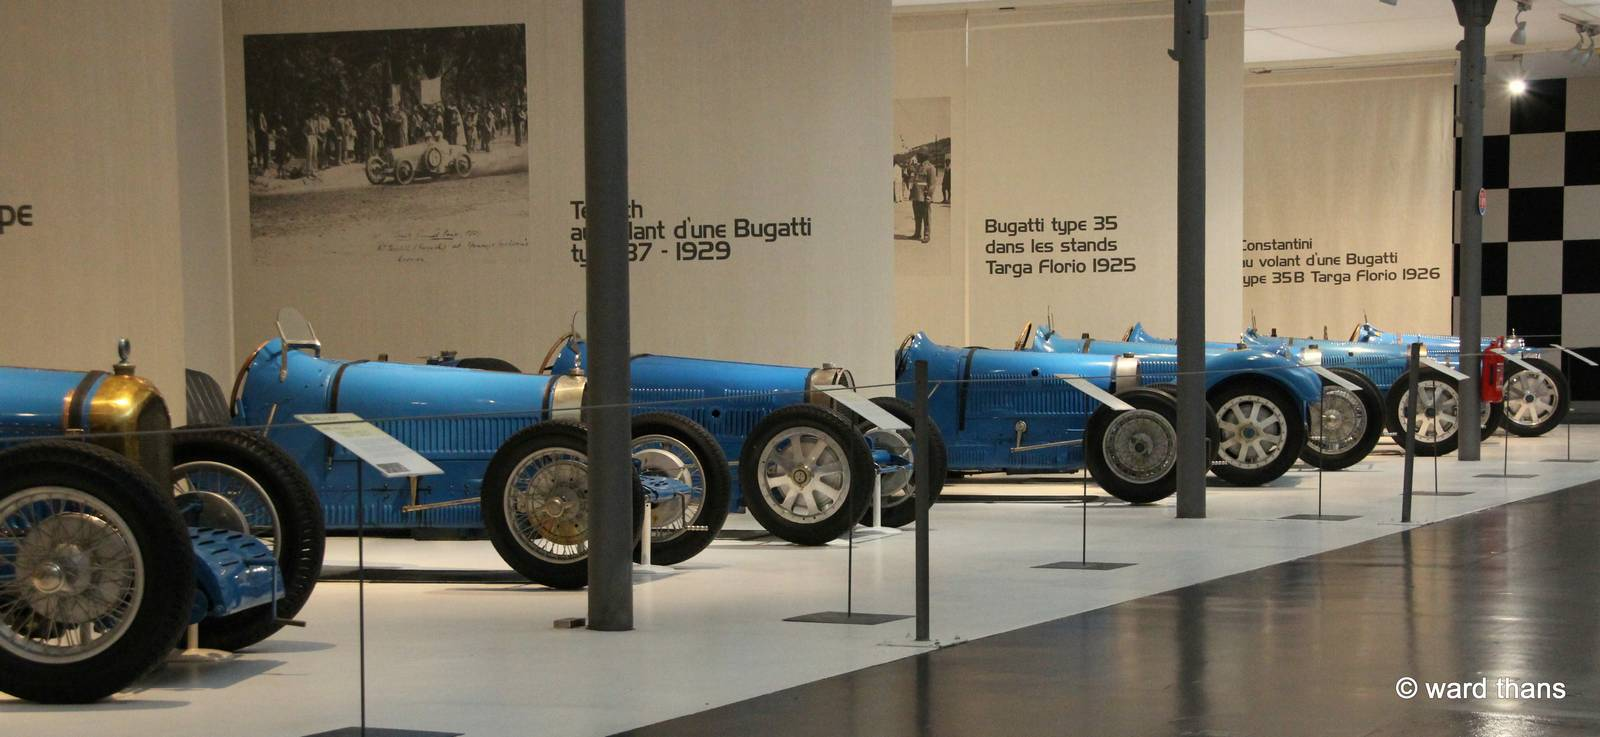 special report a visit to the world 39 s largest bugatti collection gtspirit. Black Bedroom Furniture Sets. Home Design Ideas